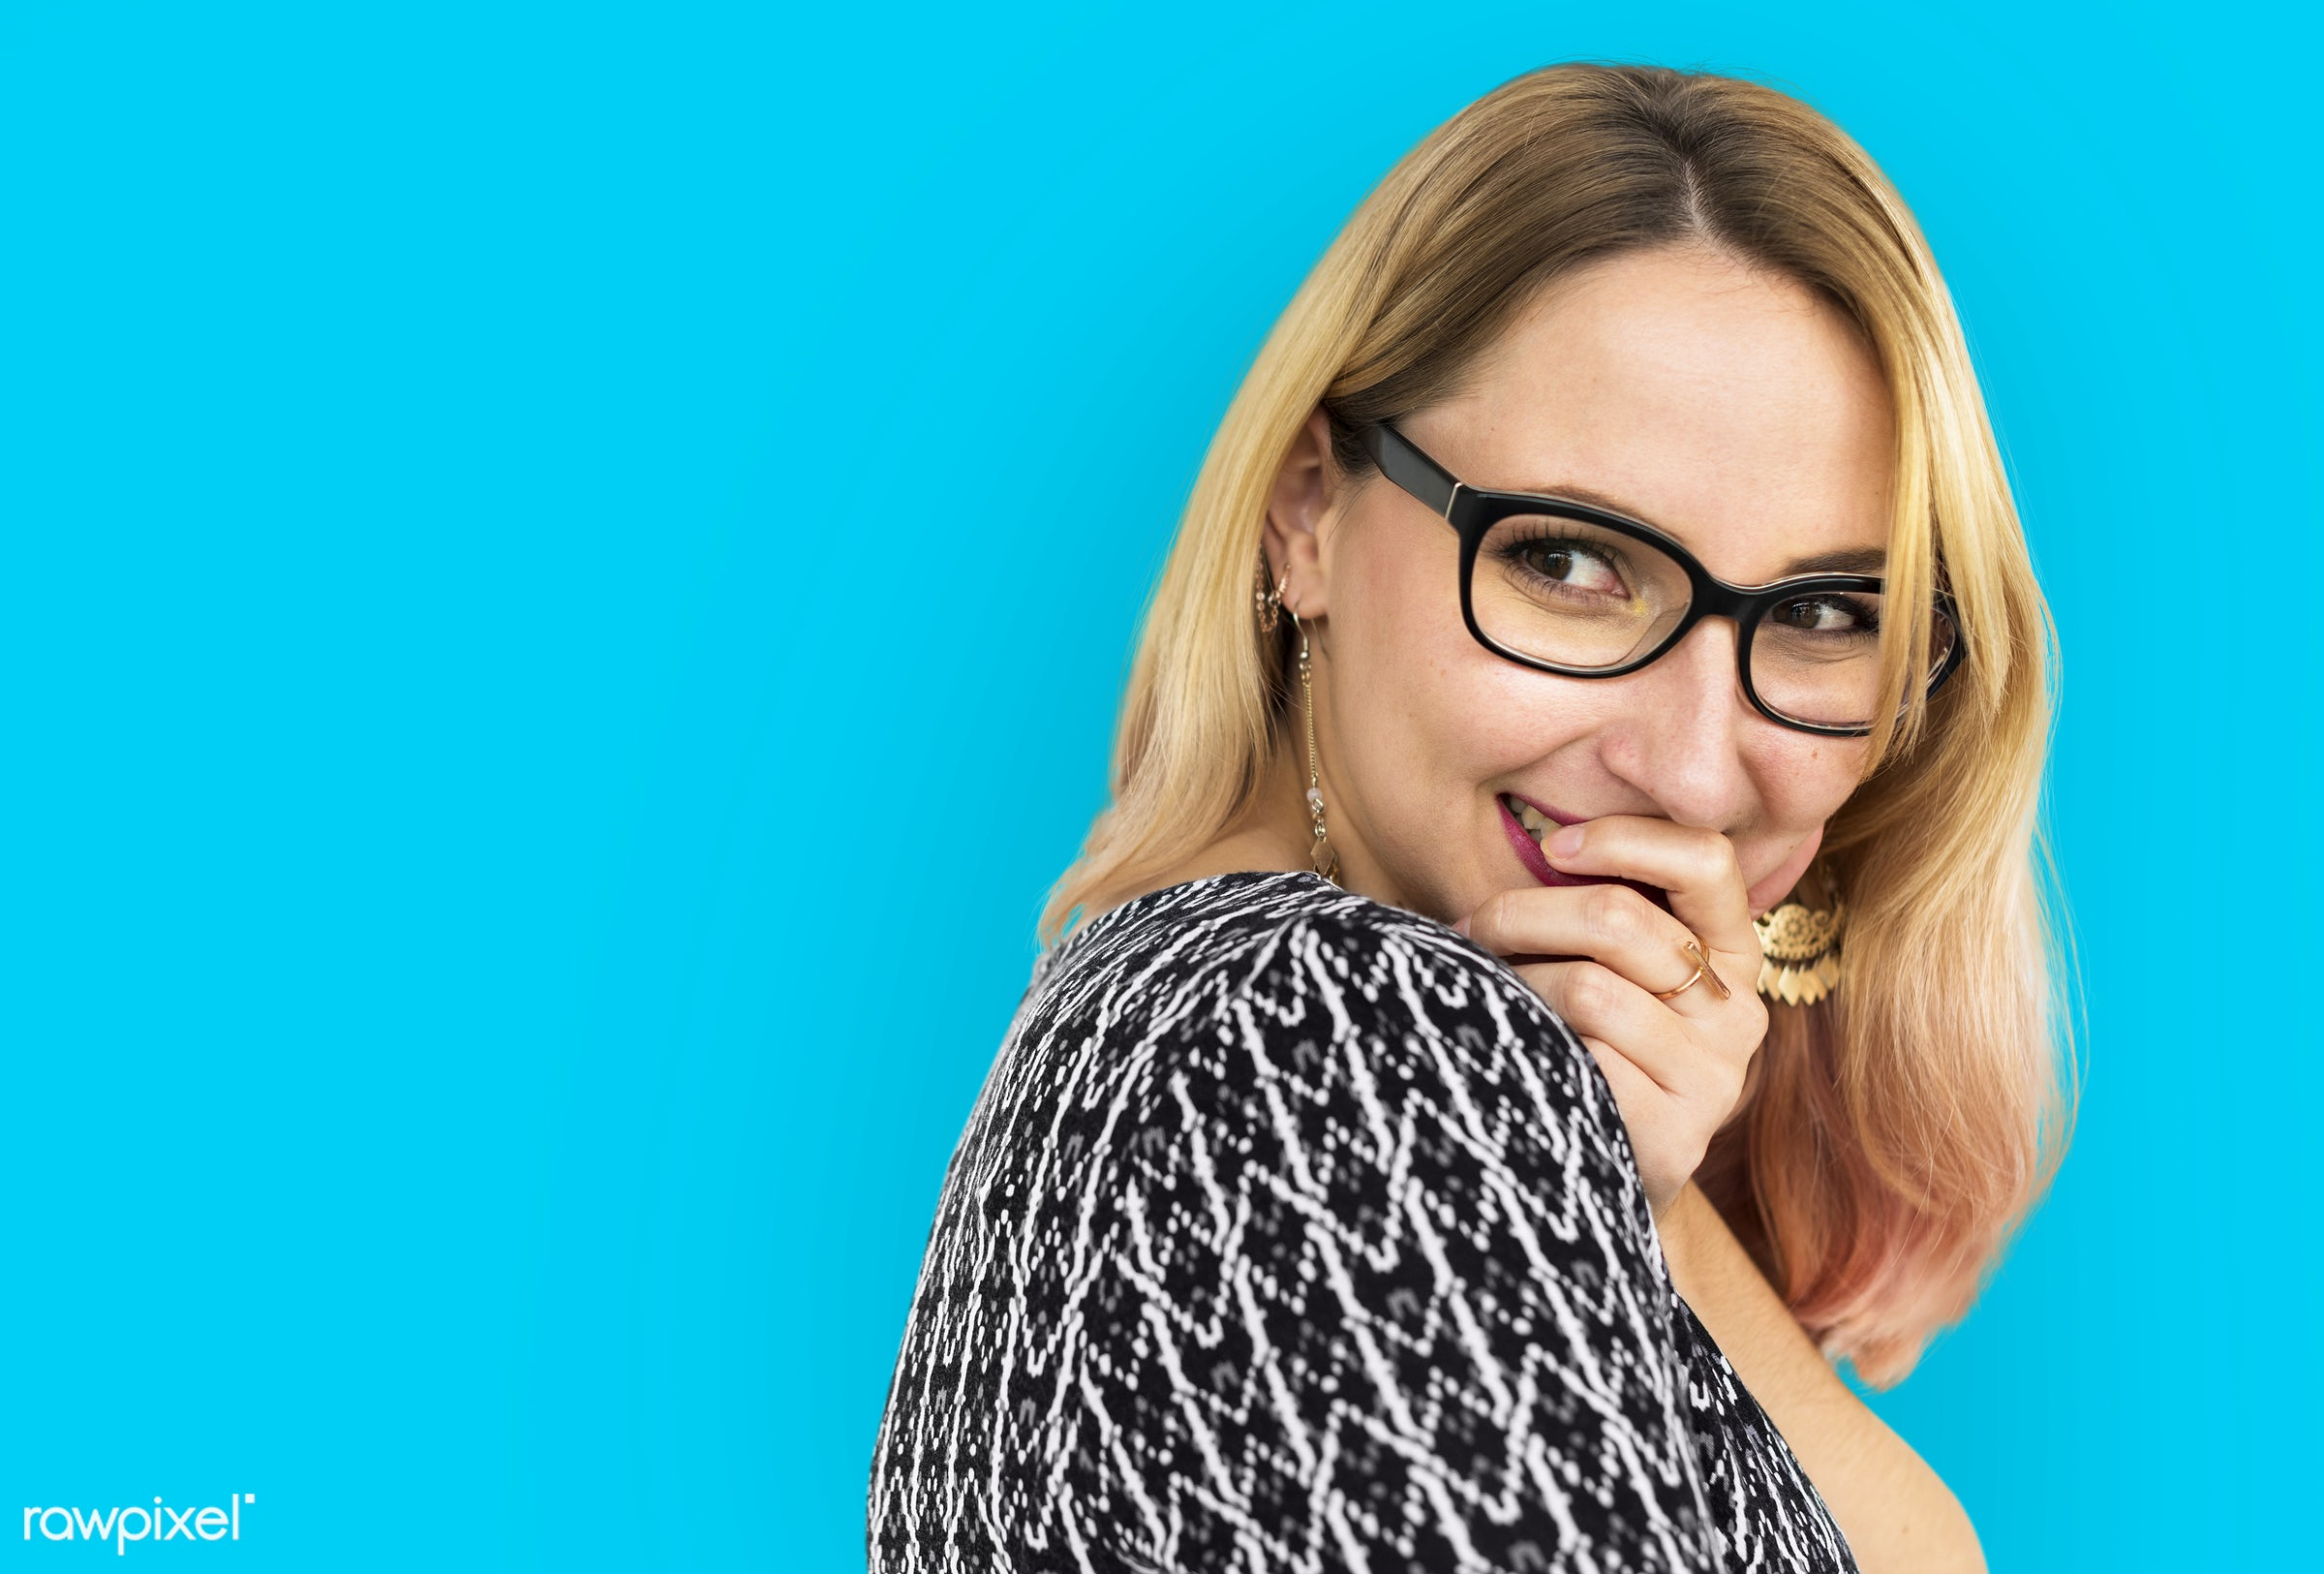 expression, studio, face, person, glasses, one, blond, vibrant, cute, pretty, people, modern, laughing, girl, attractive,...